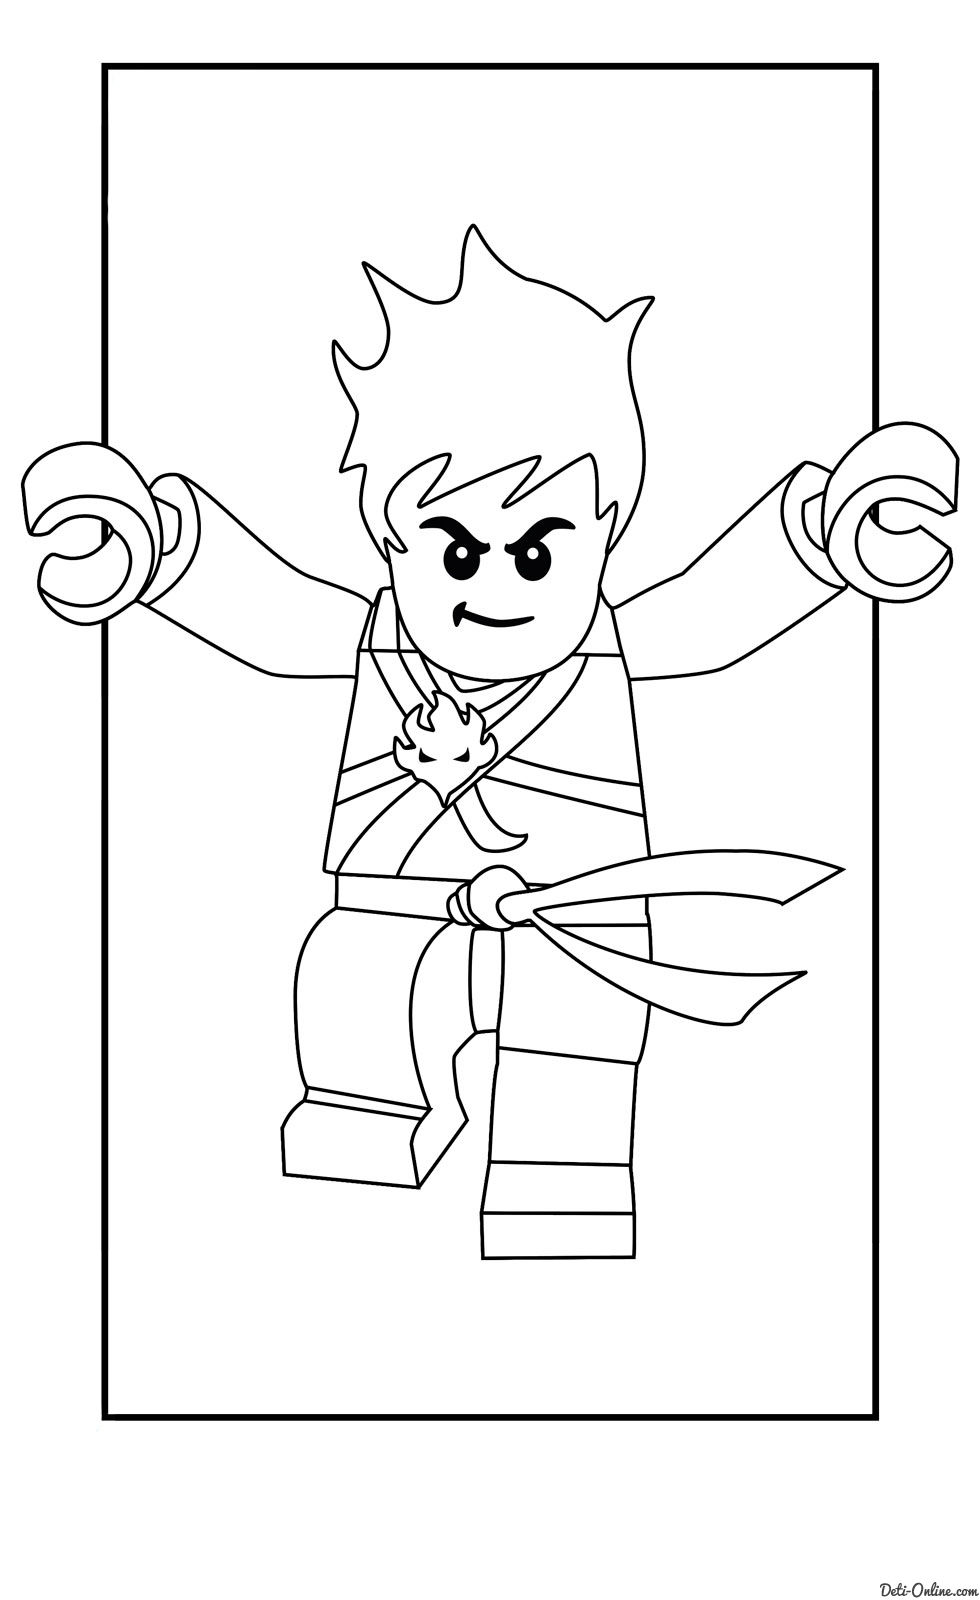 lego ninjago coloring pages - 3311